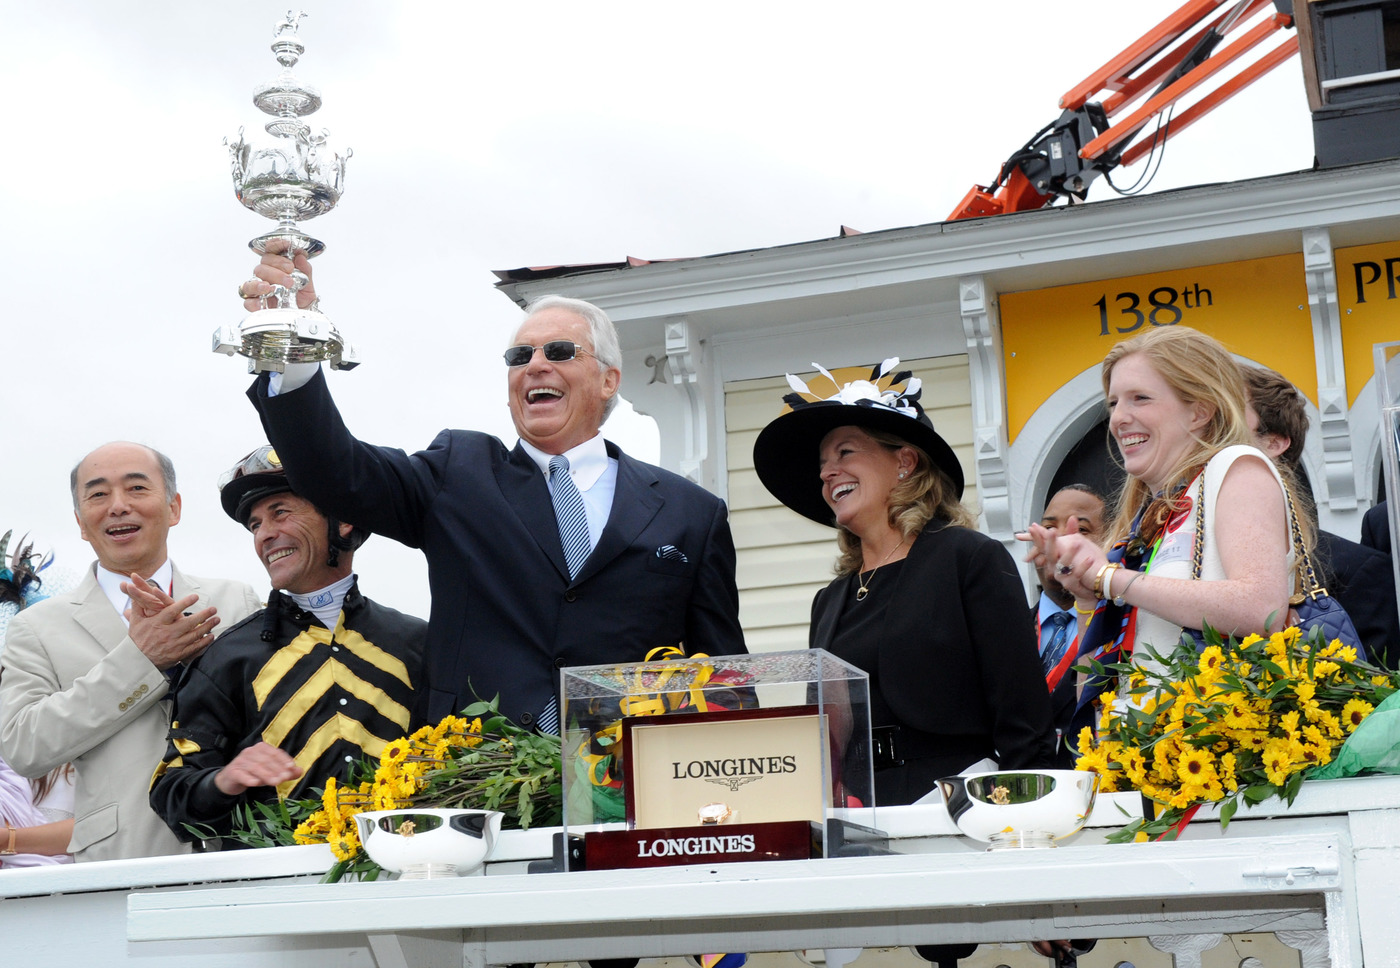 Longines Flat Racing Event: Longines awards luxury timepieces to owner, trainer and jockey of Preakness Stakes winner, Oxbow 3